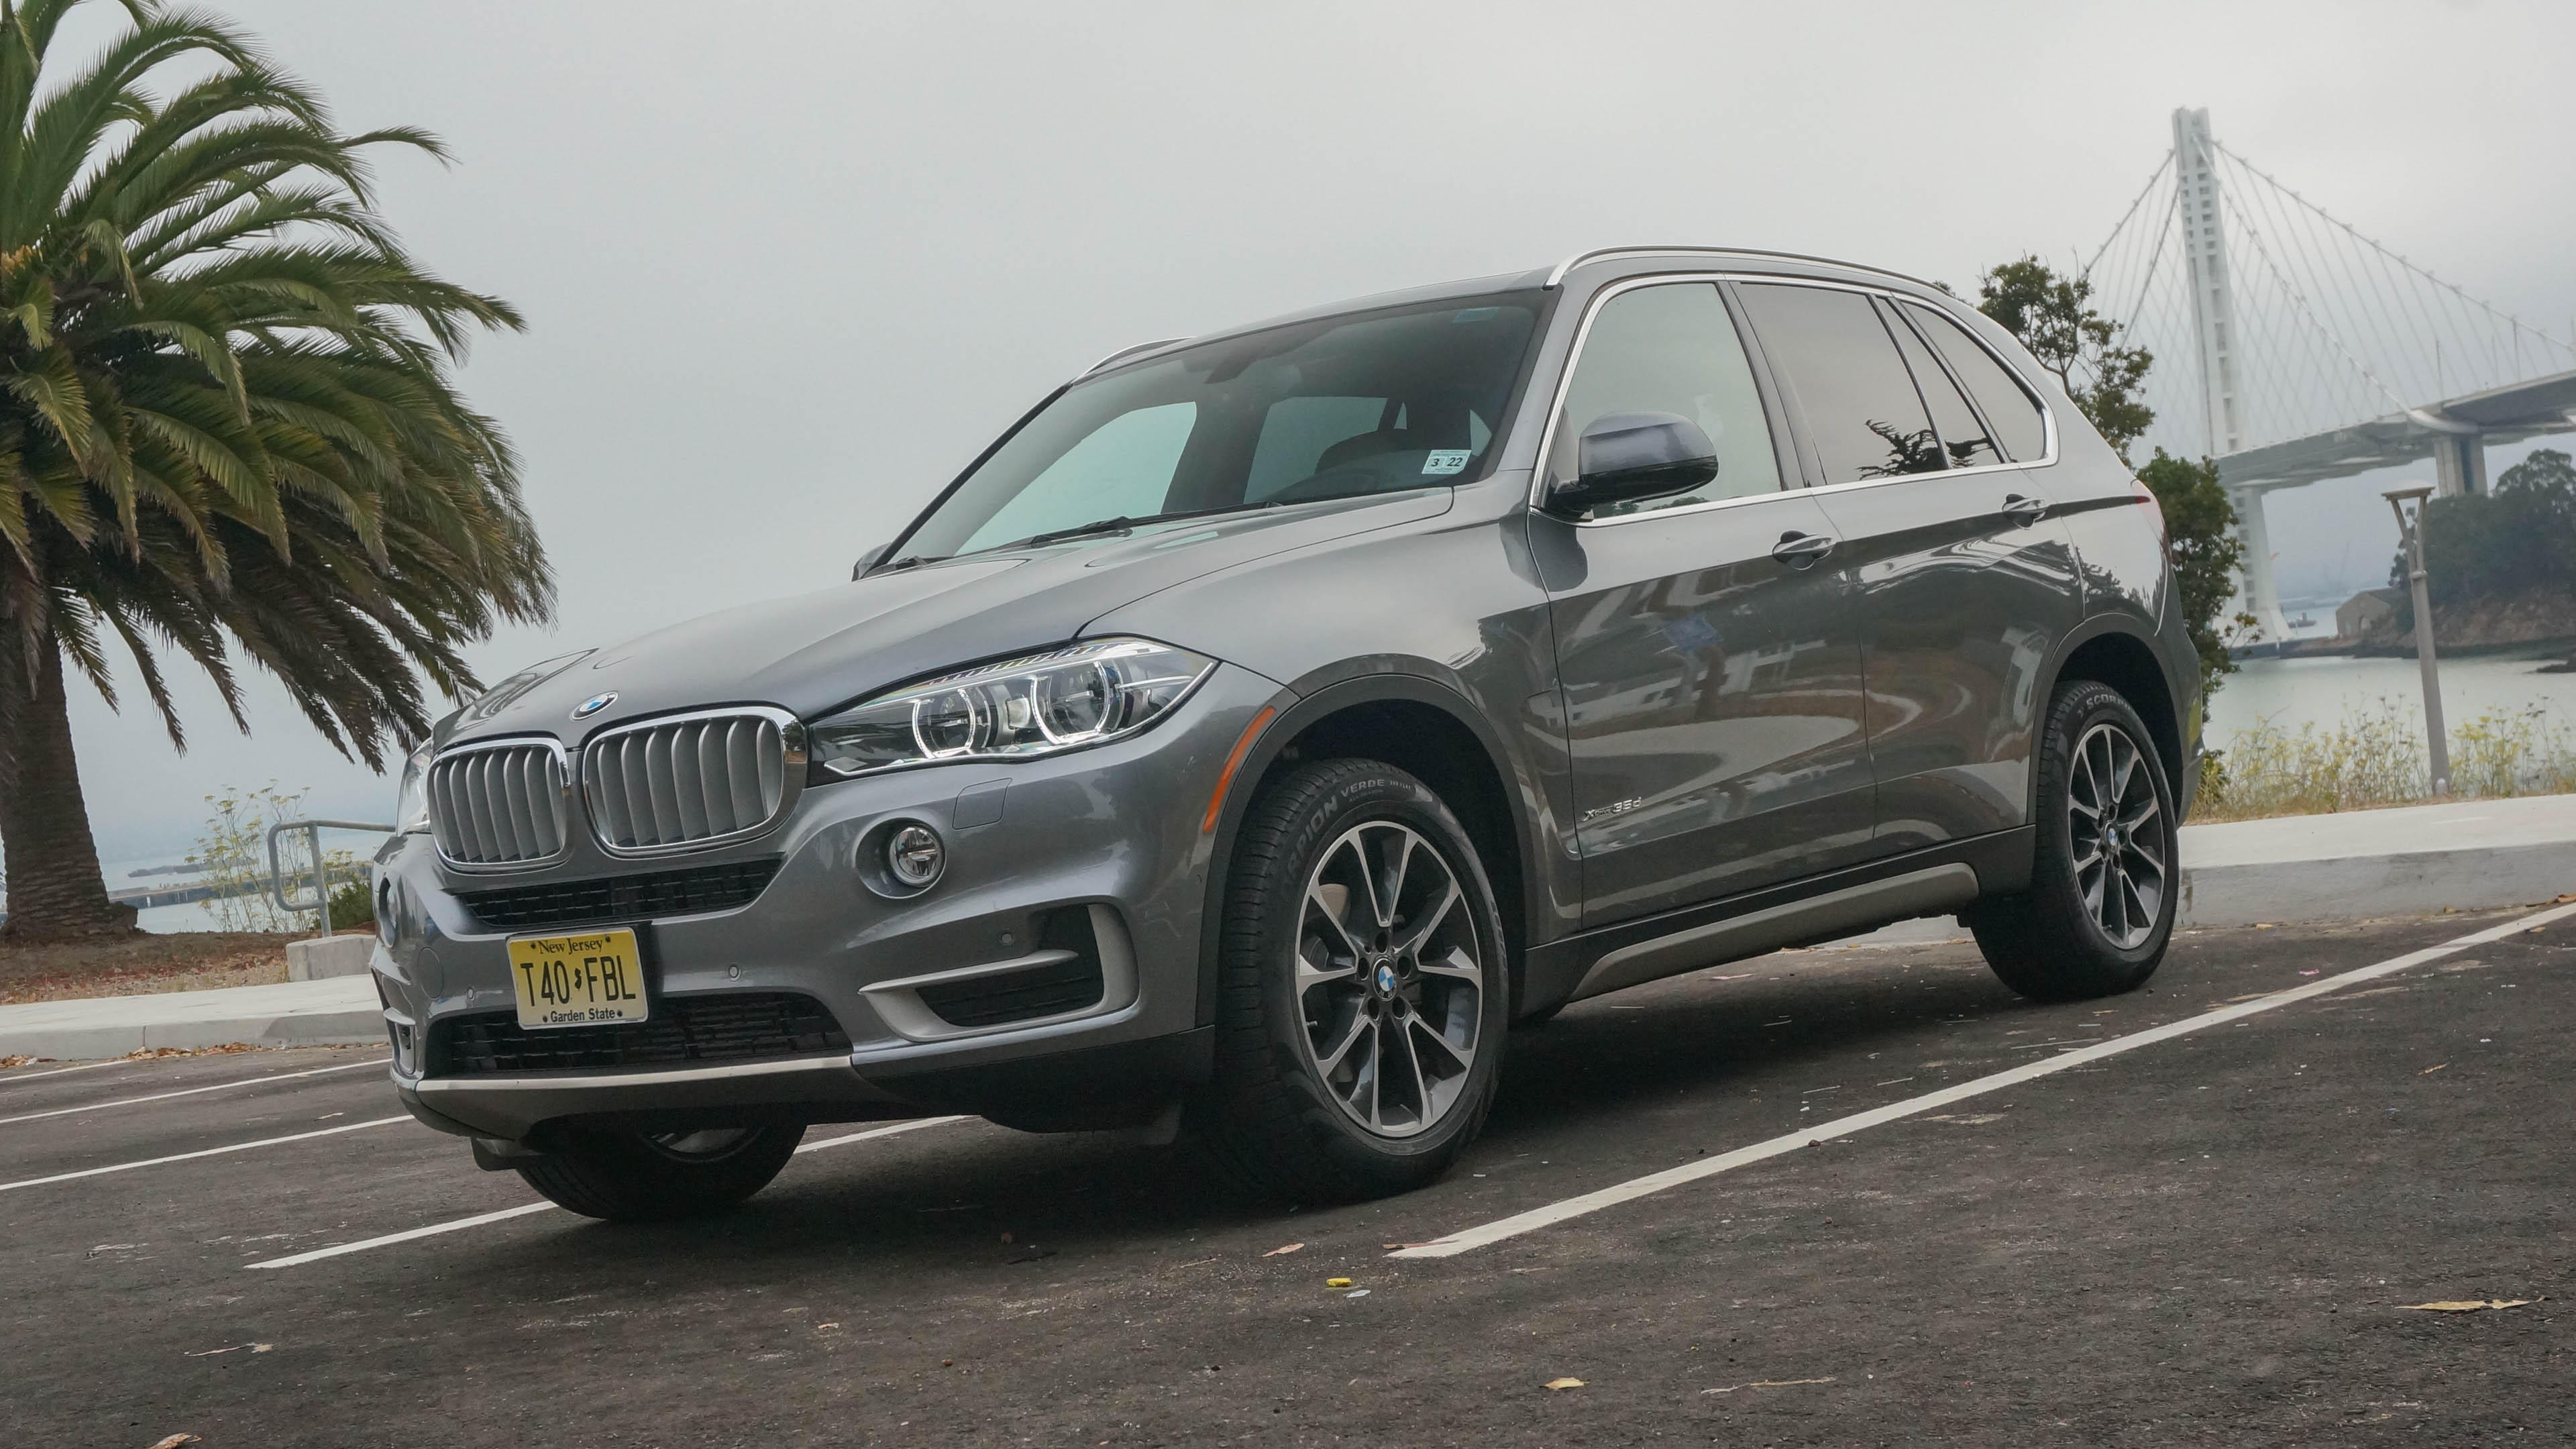 2017 Bmw X5 Xdrive35d Review Bmw S Big Diesel Is A Perfect Suv For Road Trips Roadshow